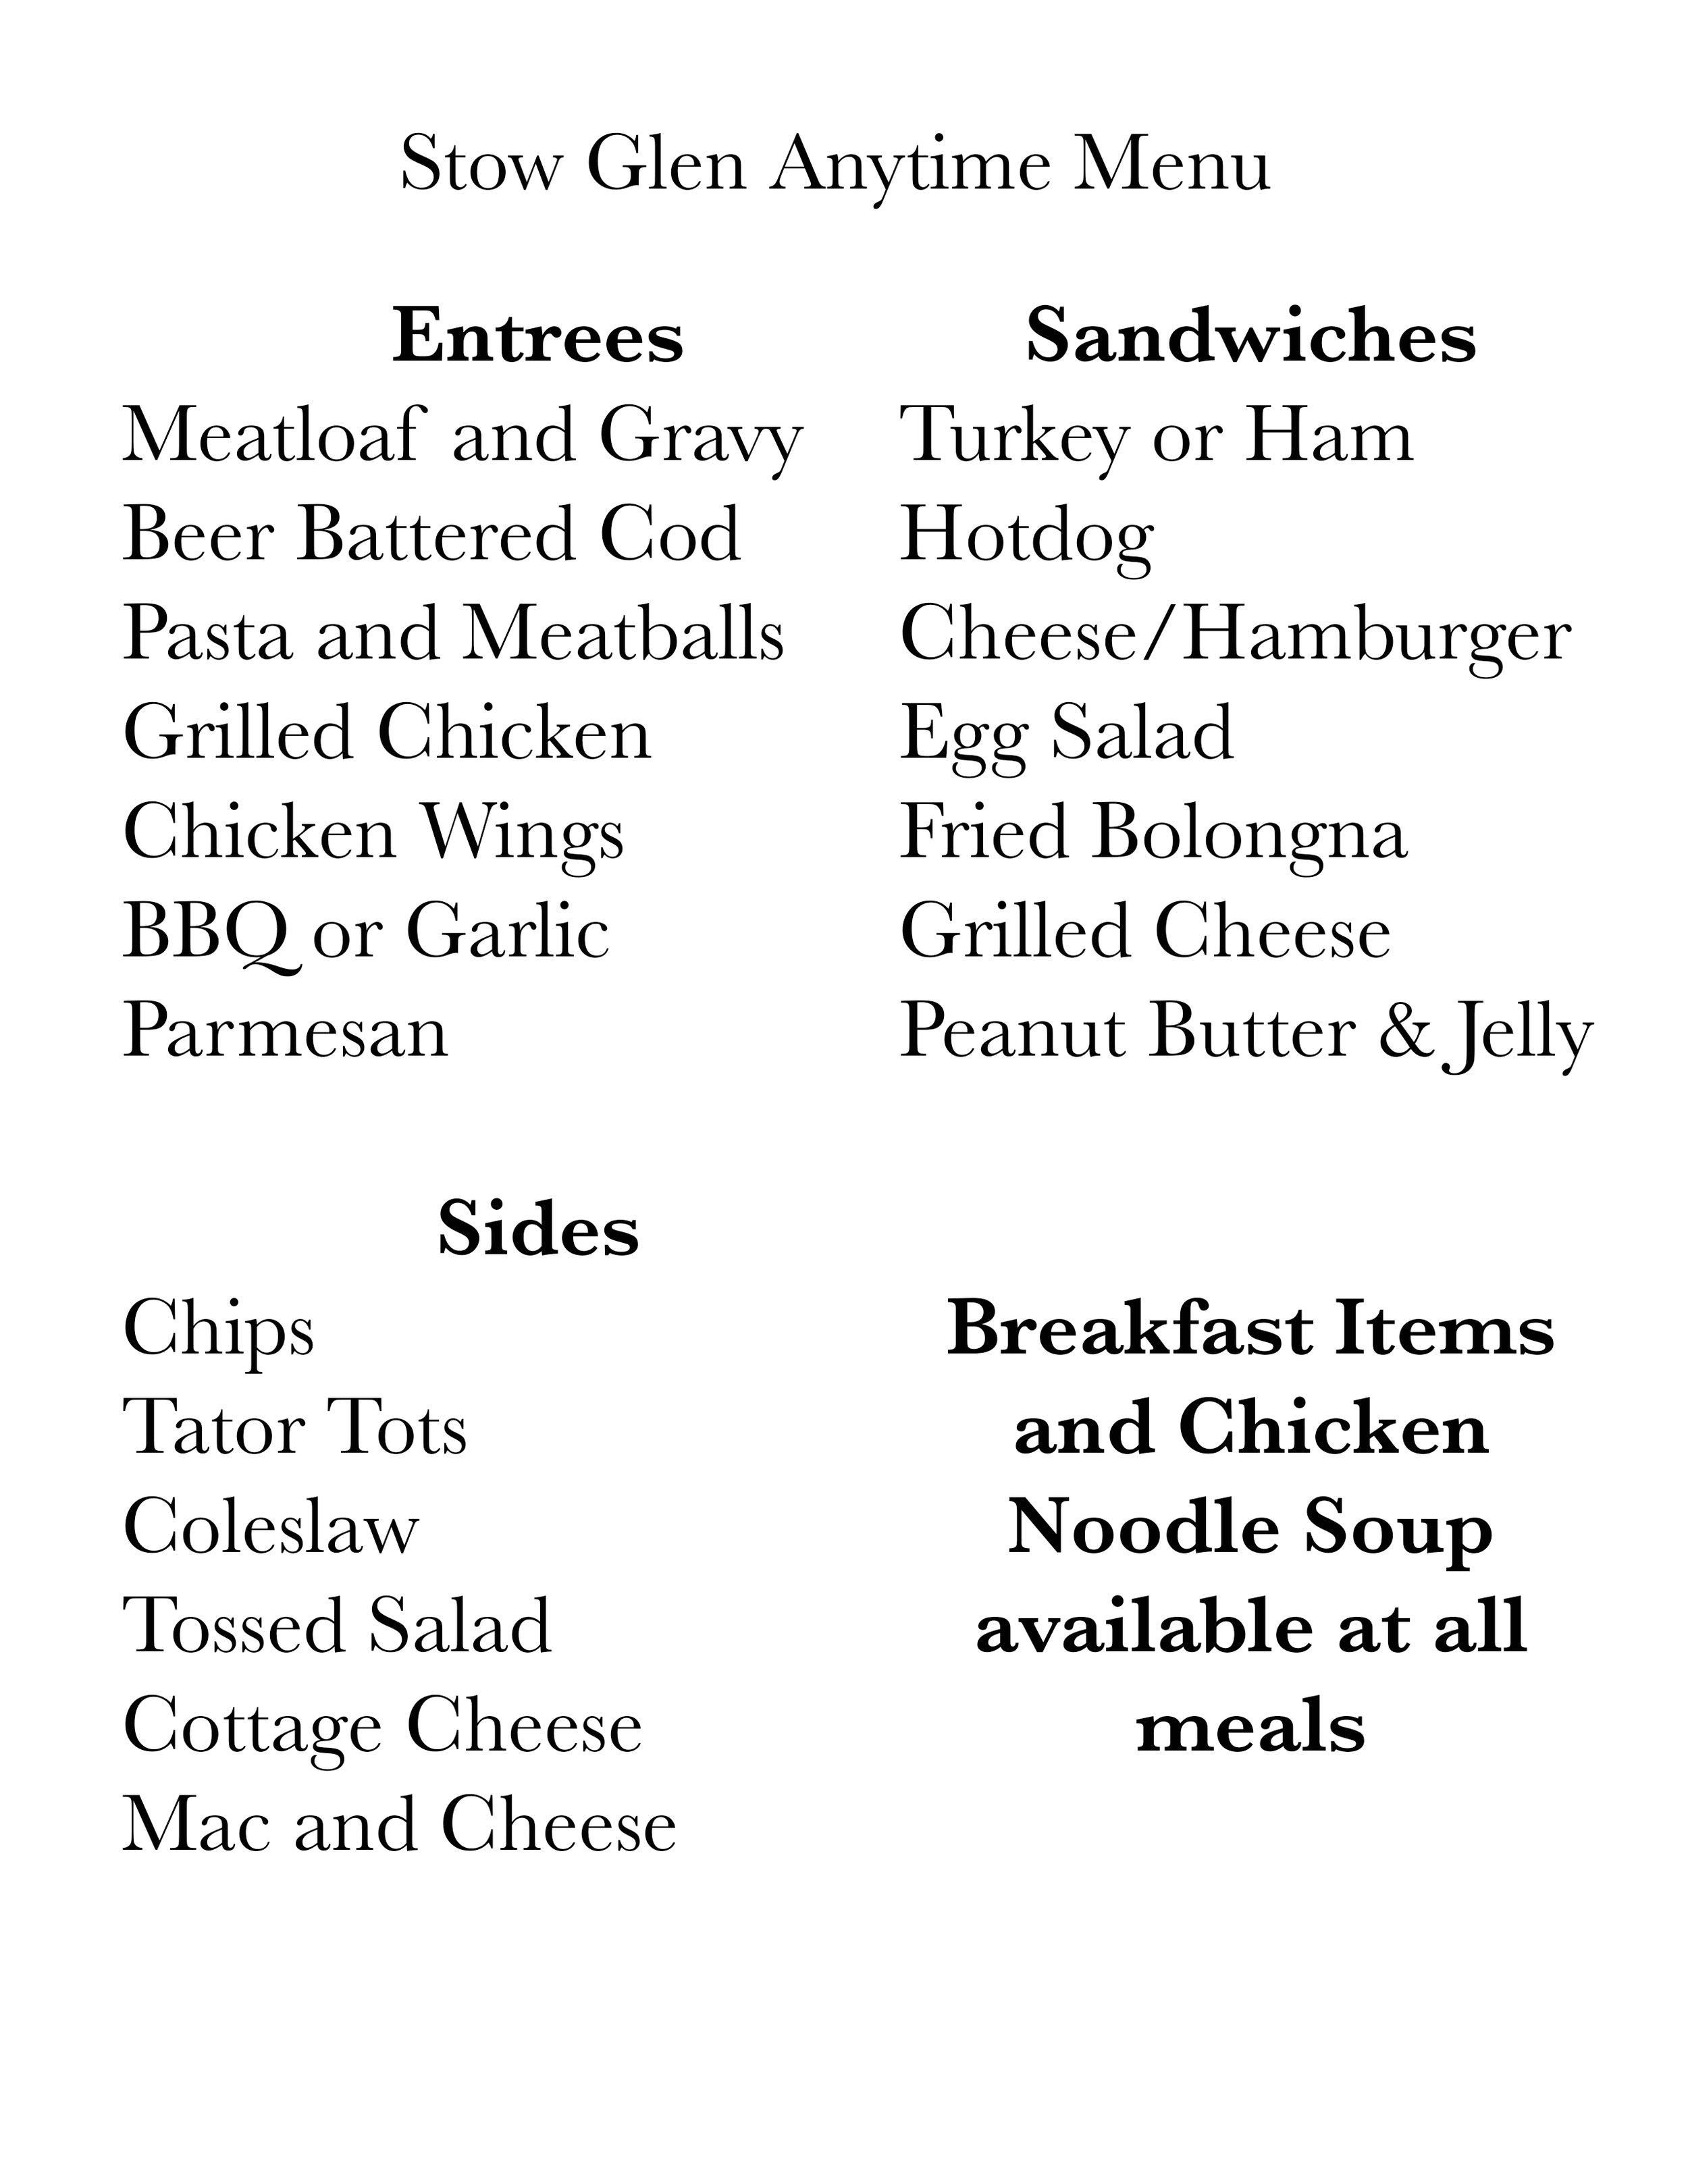 stow glen anytime menu.jpg